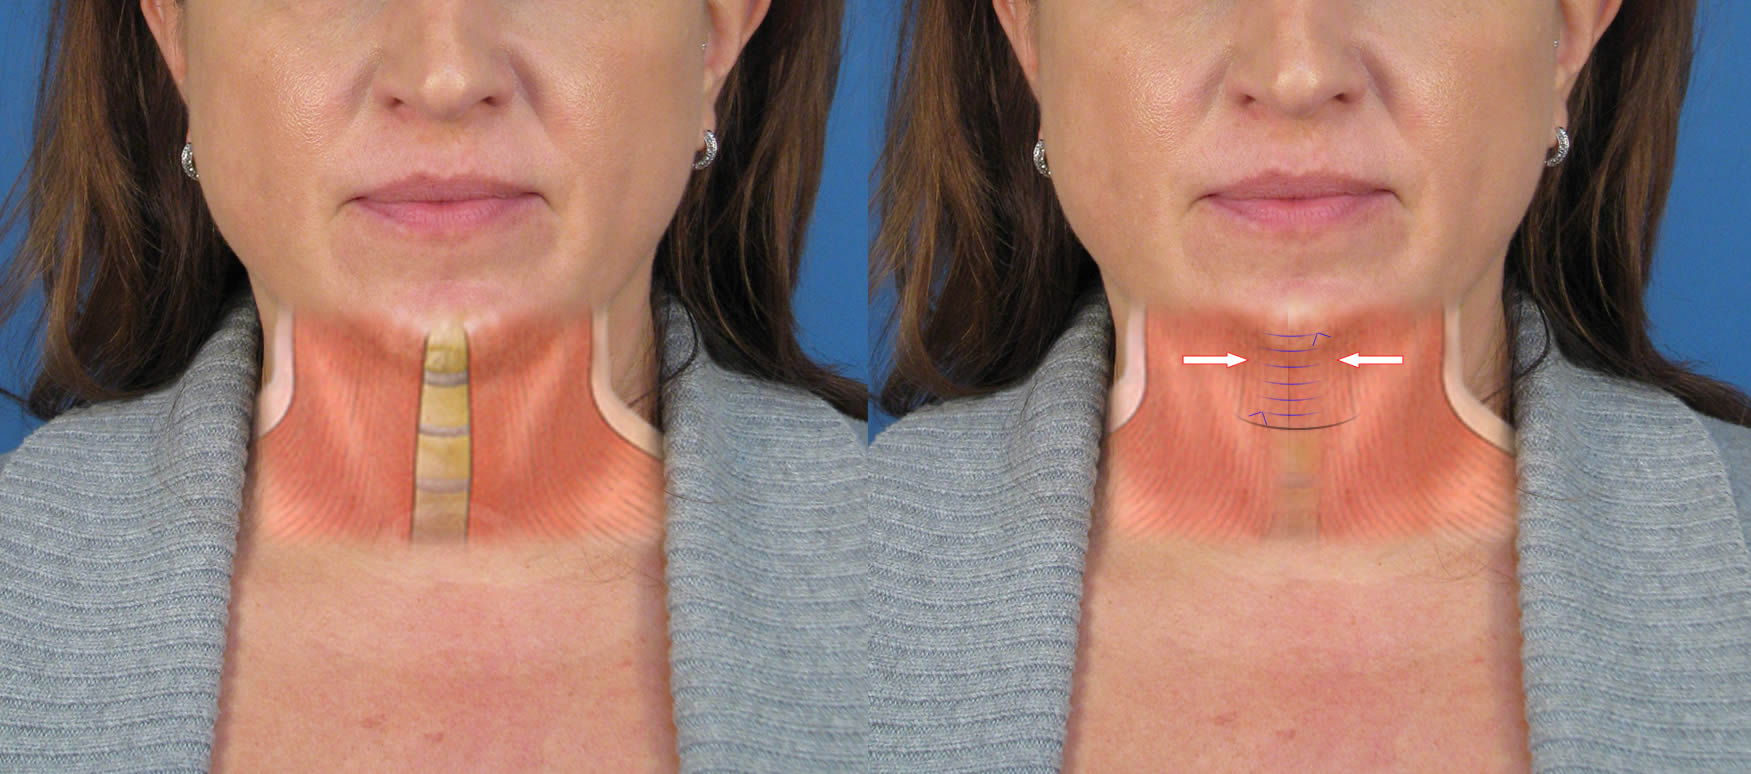 Case study of neck liposuction plastysmaplasty in san diego ca recovery from liposuction platysmaplasty ccuart Images